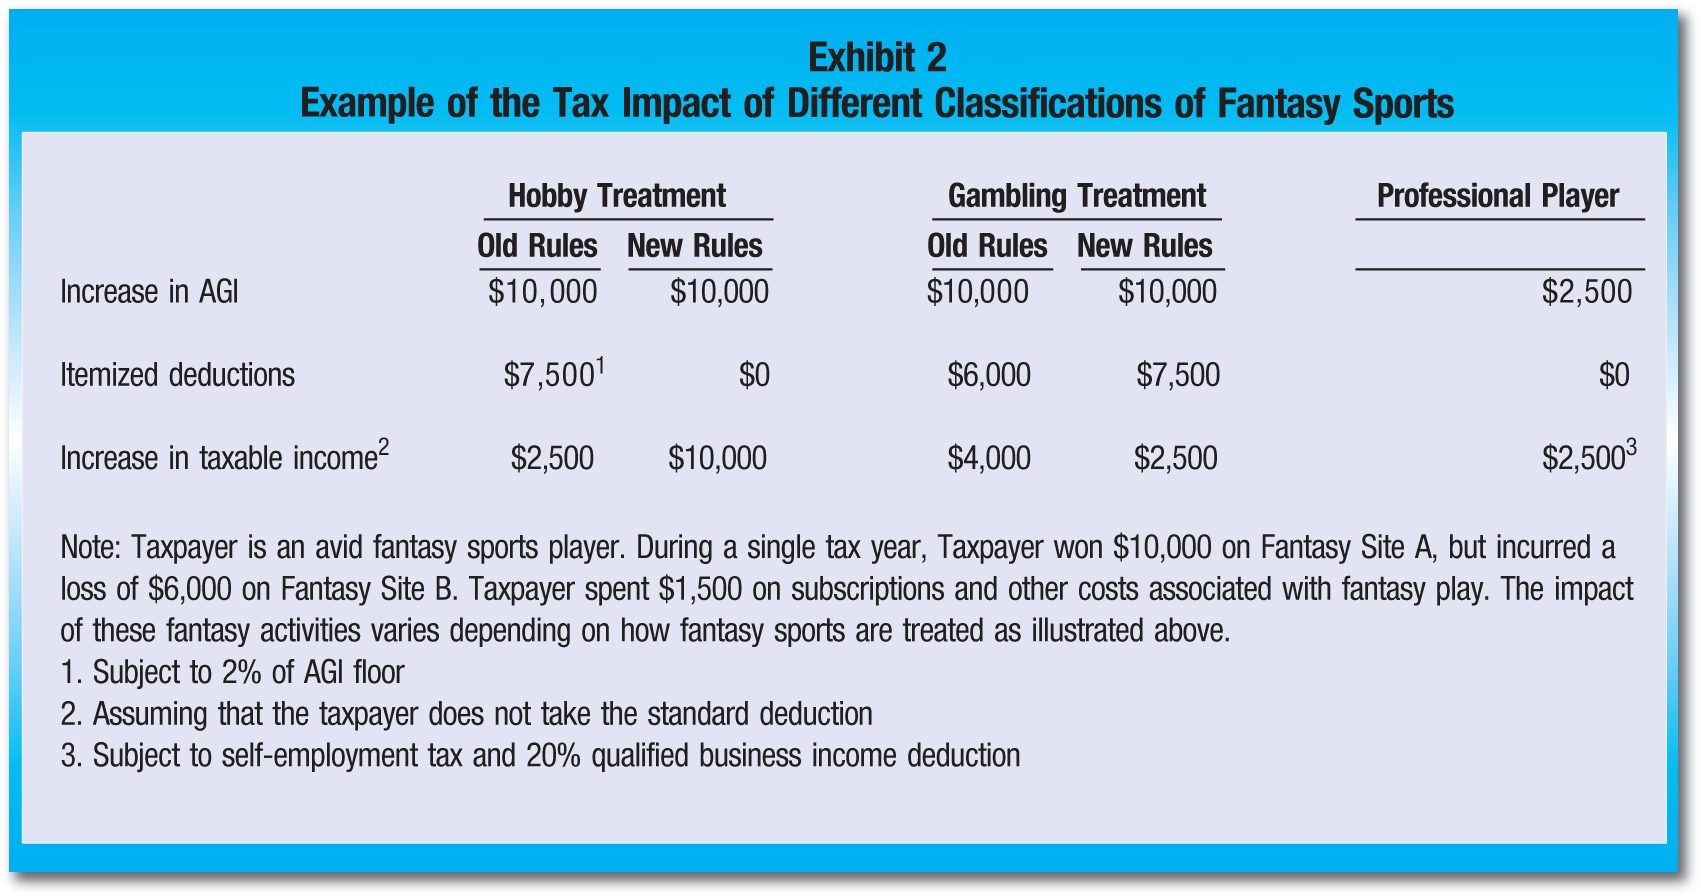 Hobby Treatment; Gambling Treatment; Professional Player; Old Rules; New Rules; Old Rules; New Rules Increase in AGI; $10,000; $10,000; $10,000; $10,000; $2,500 Itemized deductions; $7,5001; $0; $6,000; $7,500; $0 Increase in taxable income2; $2,500; $10,000; $4,000; $2,500; $2,5003 Note: Taxpayer is an avid fantasy sports player. During a single tax year, Taxpayer won $10,000 on Fantasy Site A, but incurred a loss of $6,000 on Fantasy Site B. Taxpayer spent $1,500 on subscriptions and other costs associated with fantasy play. The impact of these fantasy activities varies depending on how fantasy sports are treated as illustrated above. 1. Subject to 2% of AGI floor 2. Assuming that the taxpayer does not take the standard deduction 3. Subject to self-employment tax and 20% qualified business income deduction